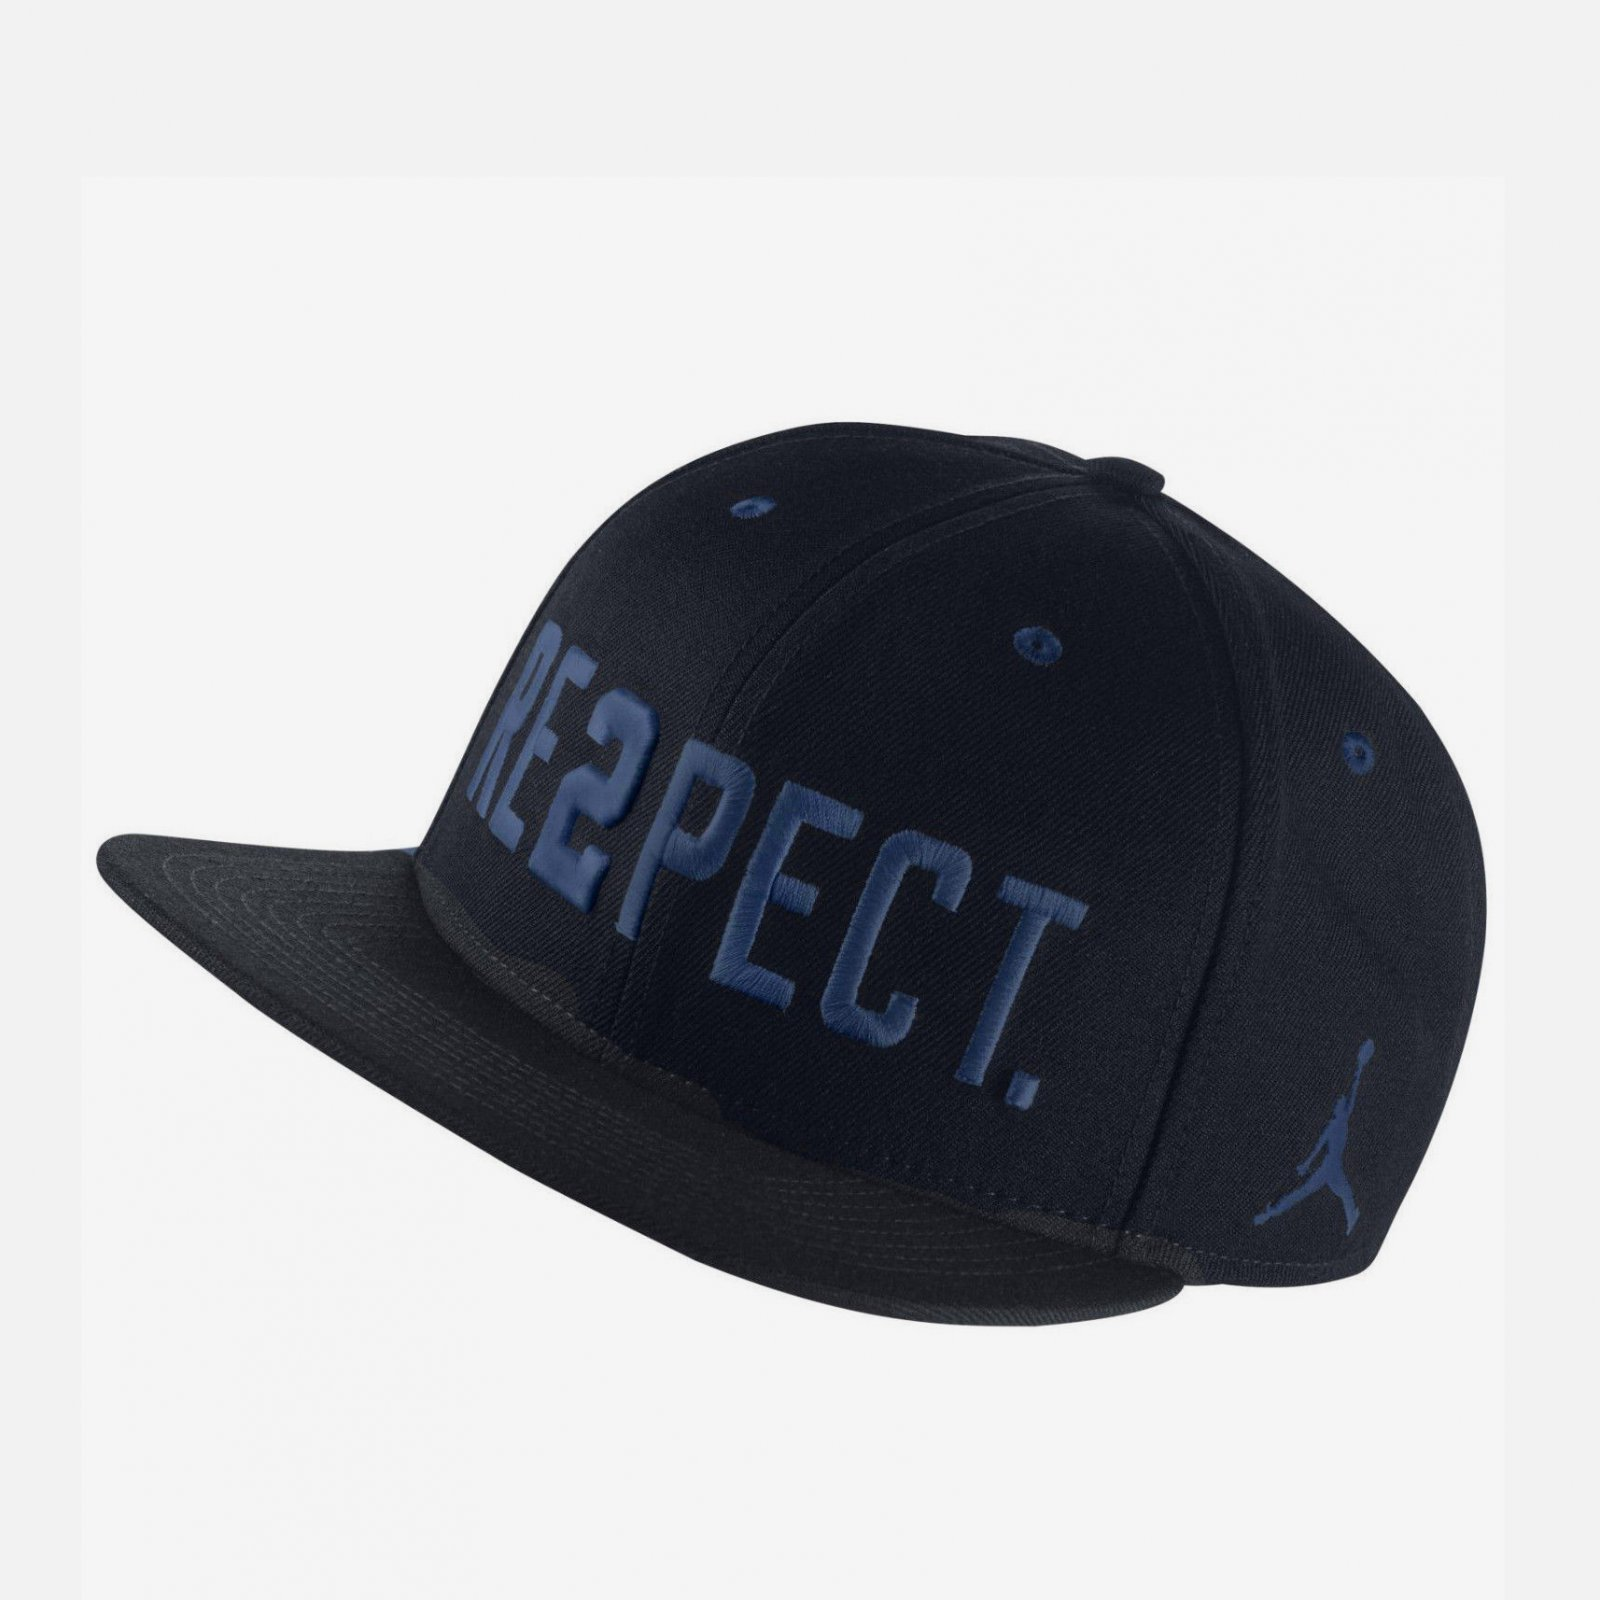 85c697aa52ef ... cheap jordan re2pect derek jeter snapback hat black navy cap air nike  715818 011 c010c 11eab